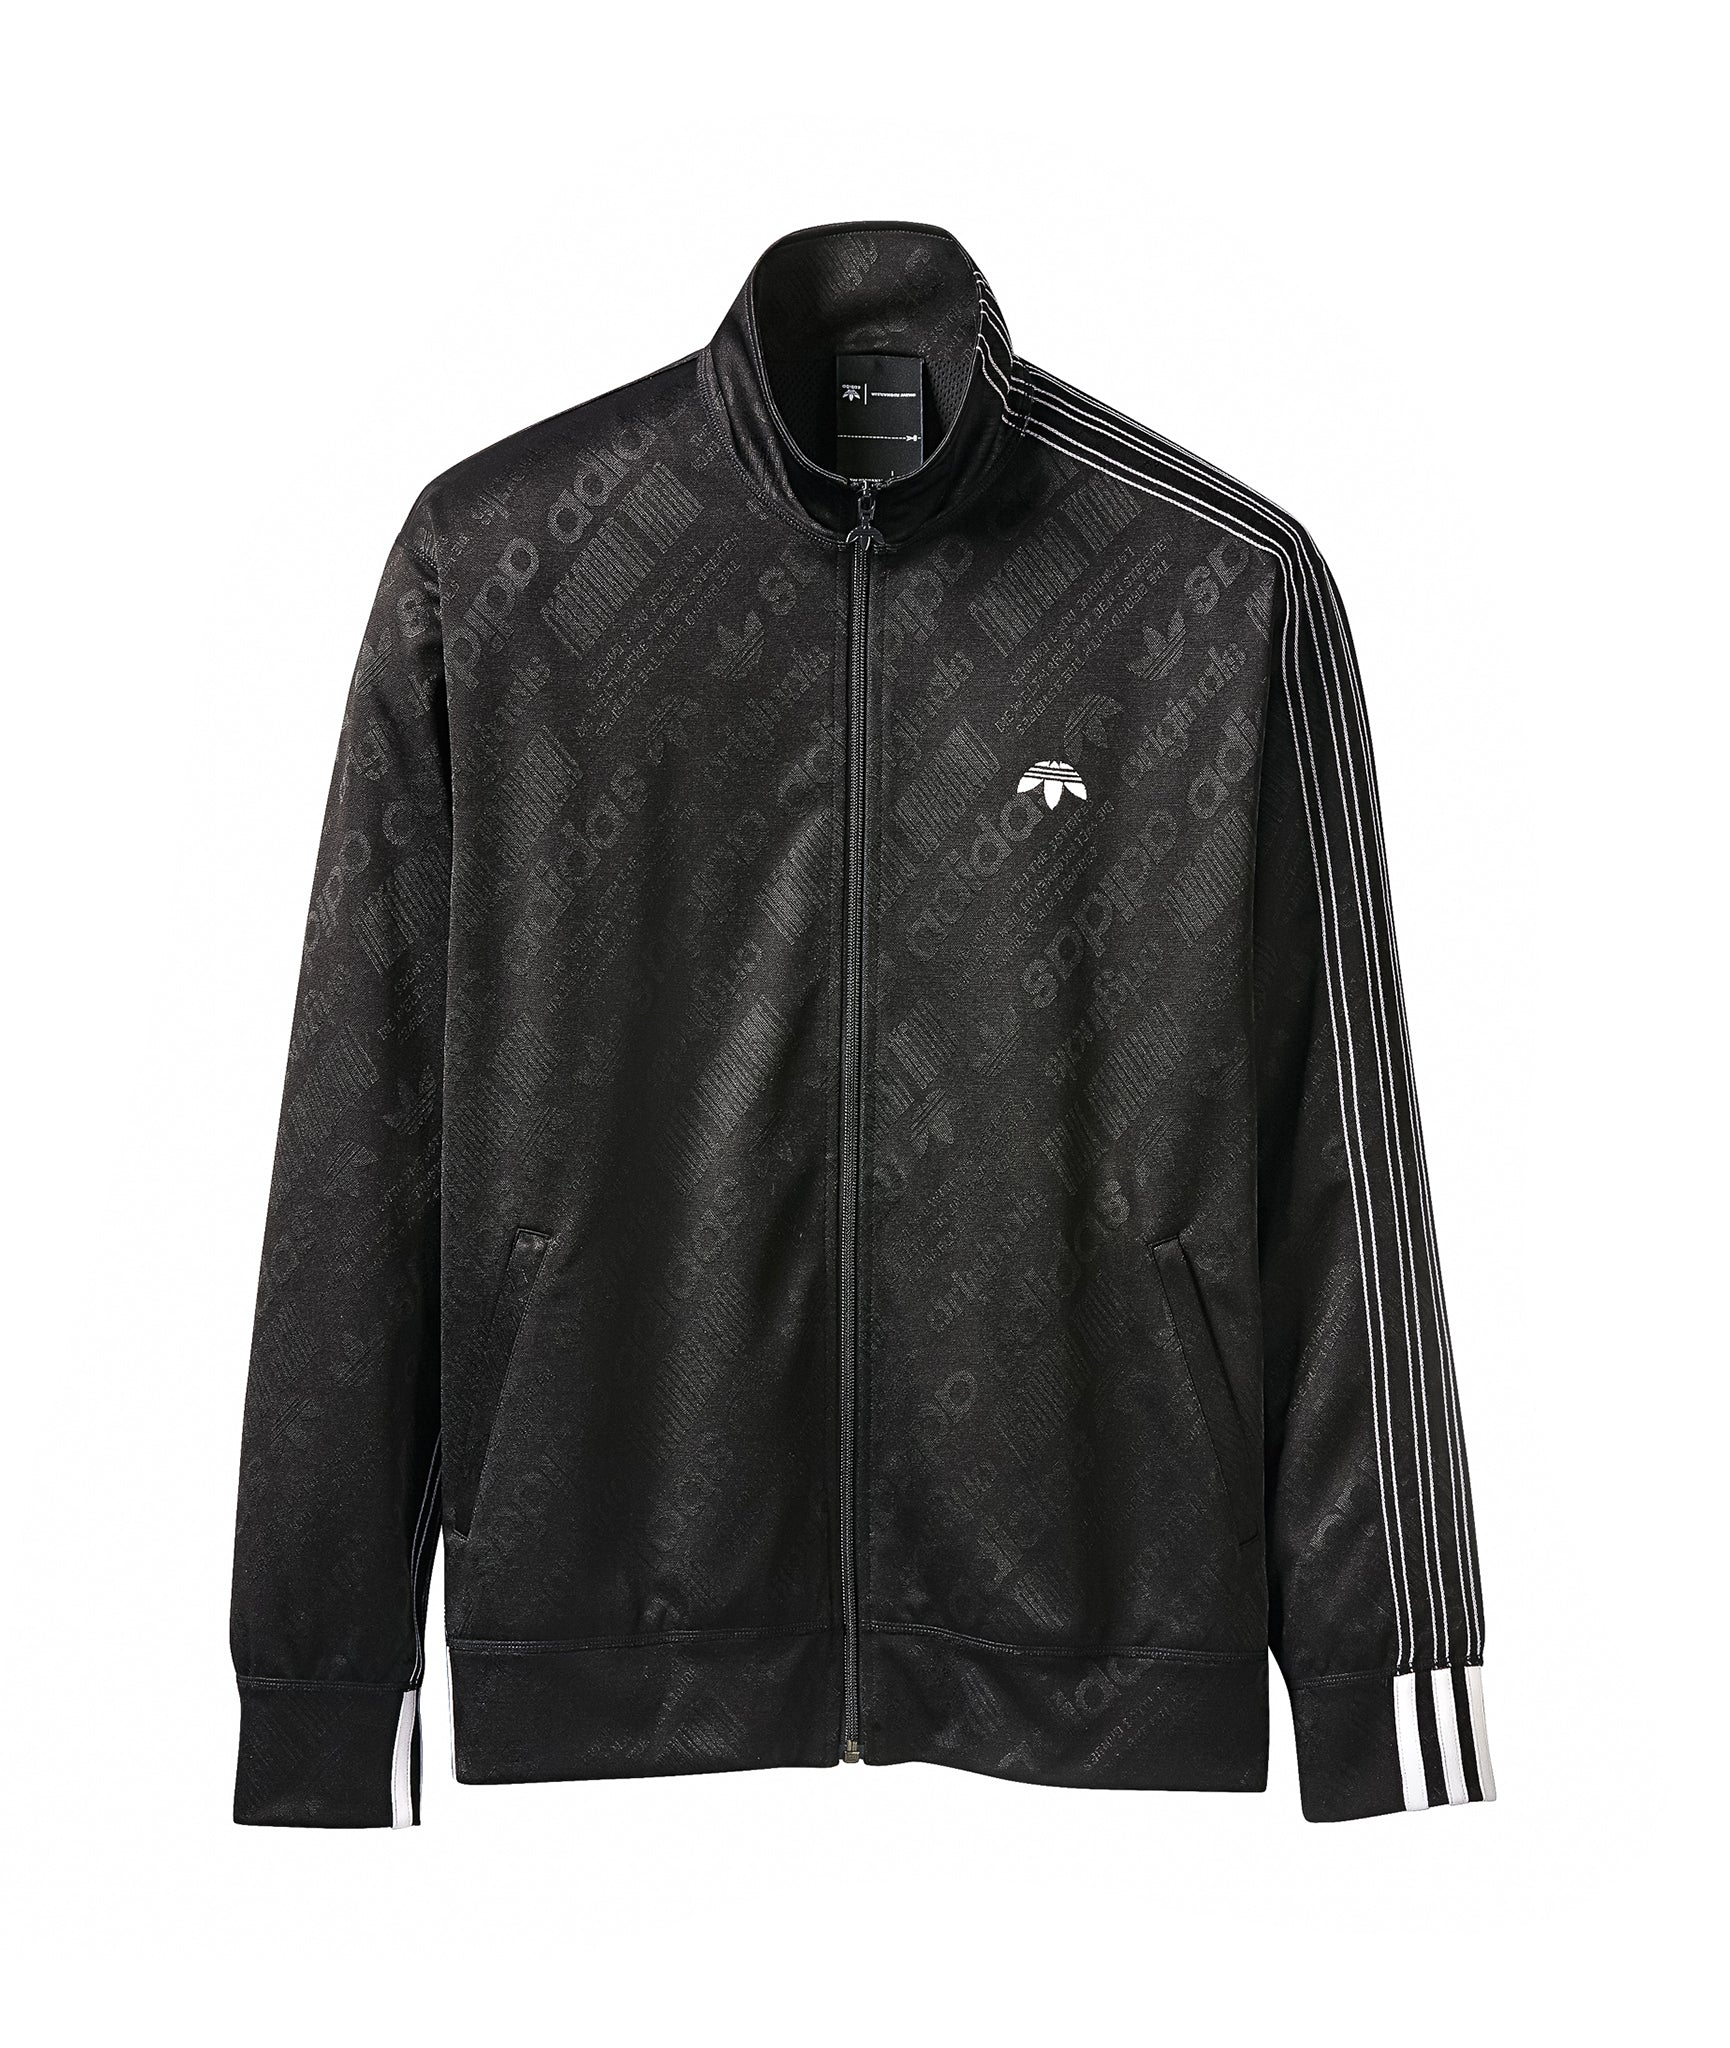 Adidas Originals By Alexander Wang Jacquard Track Top